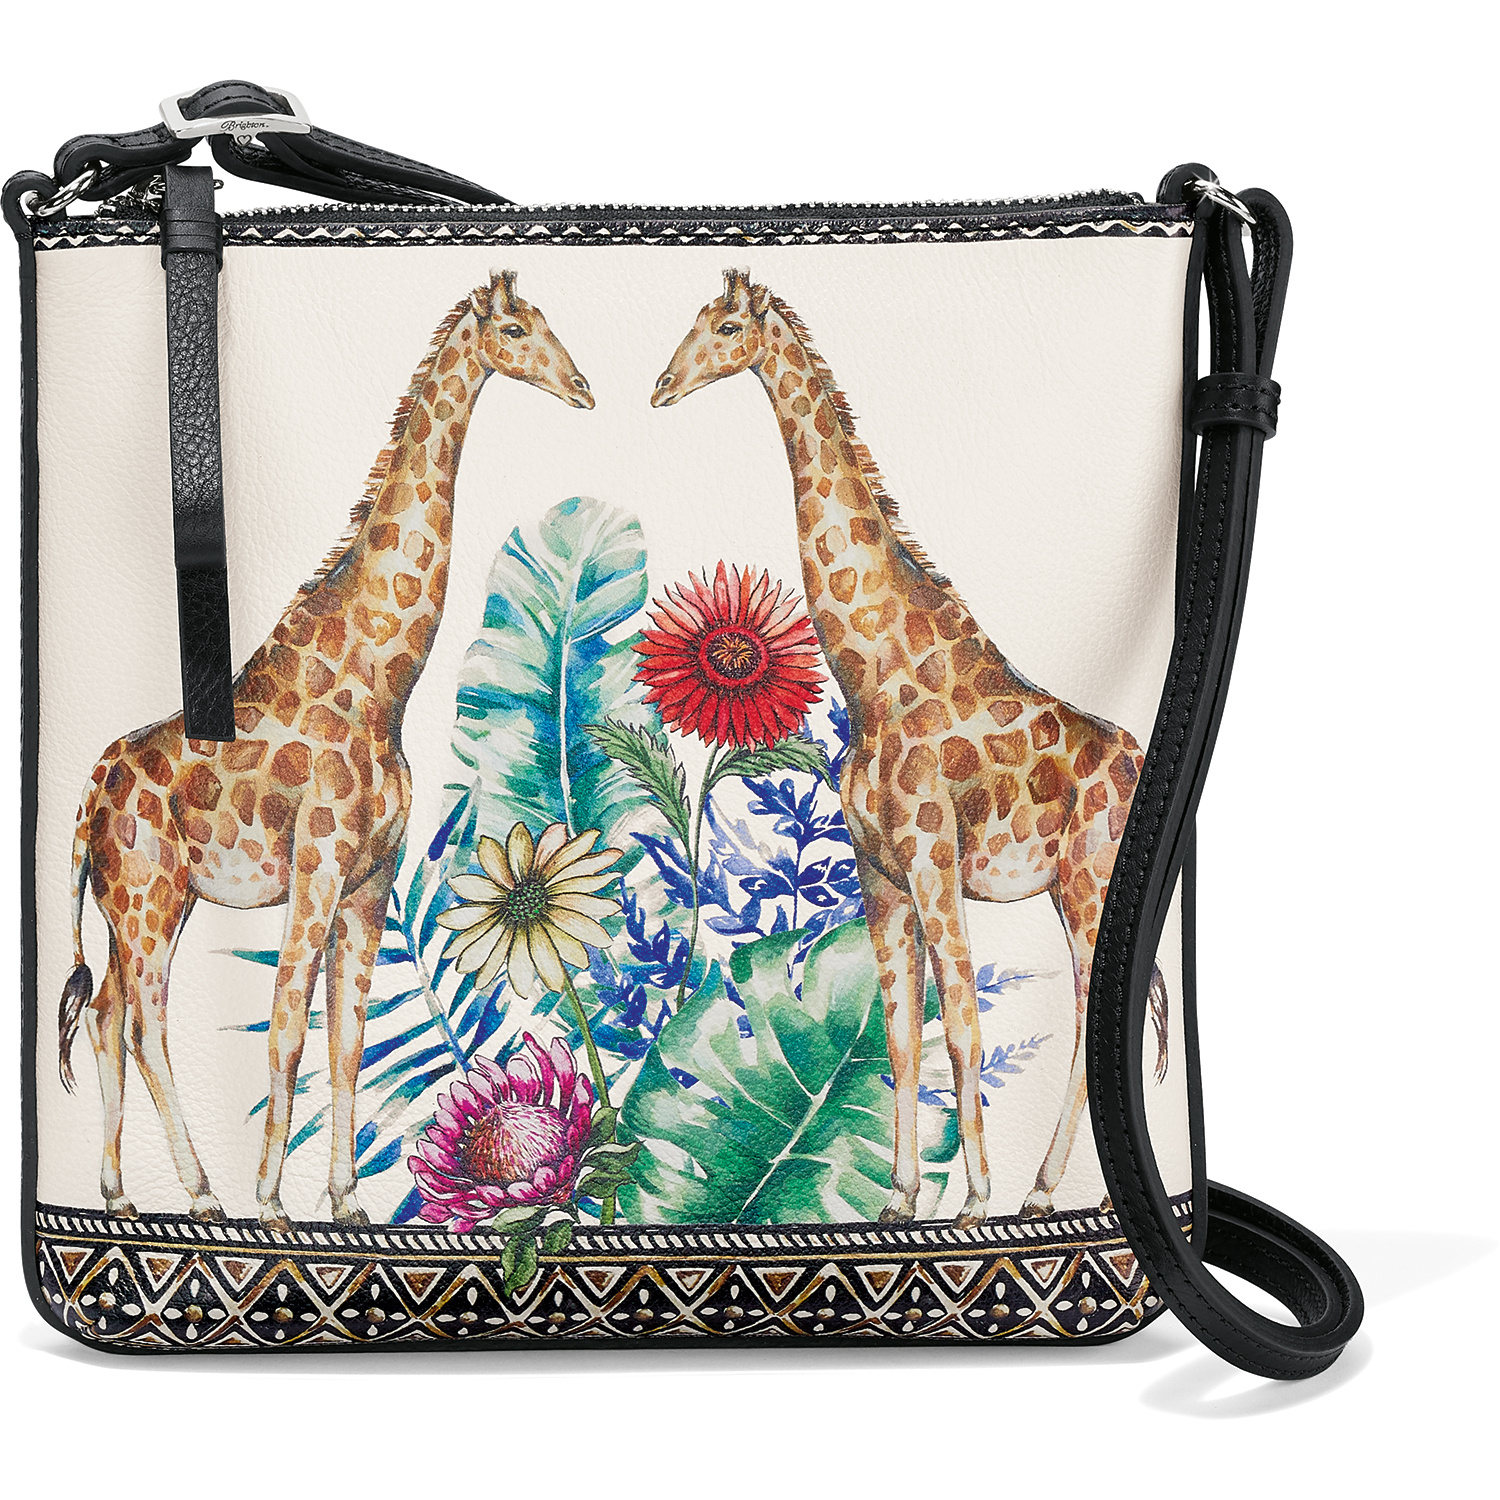 Roomy Pockets Series Two Giraffes In Black And White Small Crossbody Bag Cell Phone Purse Wallet For Women Girls